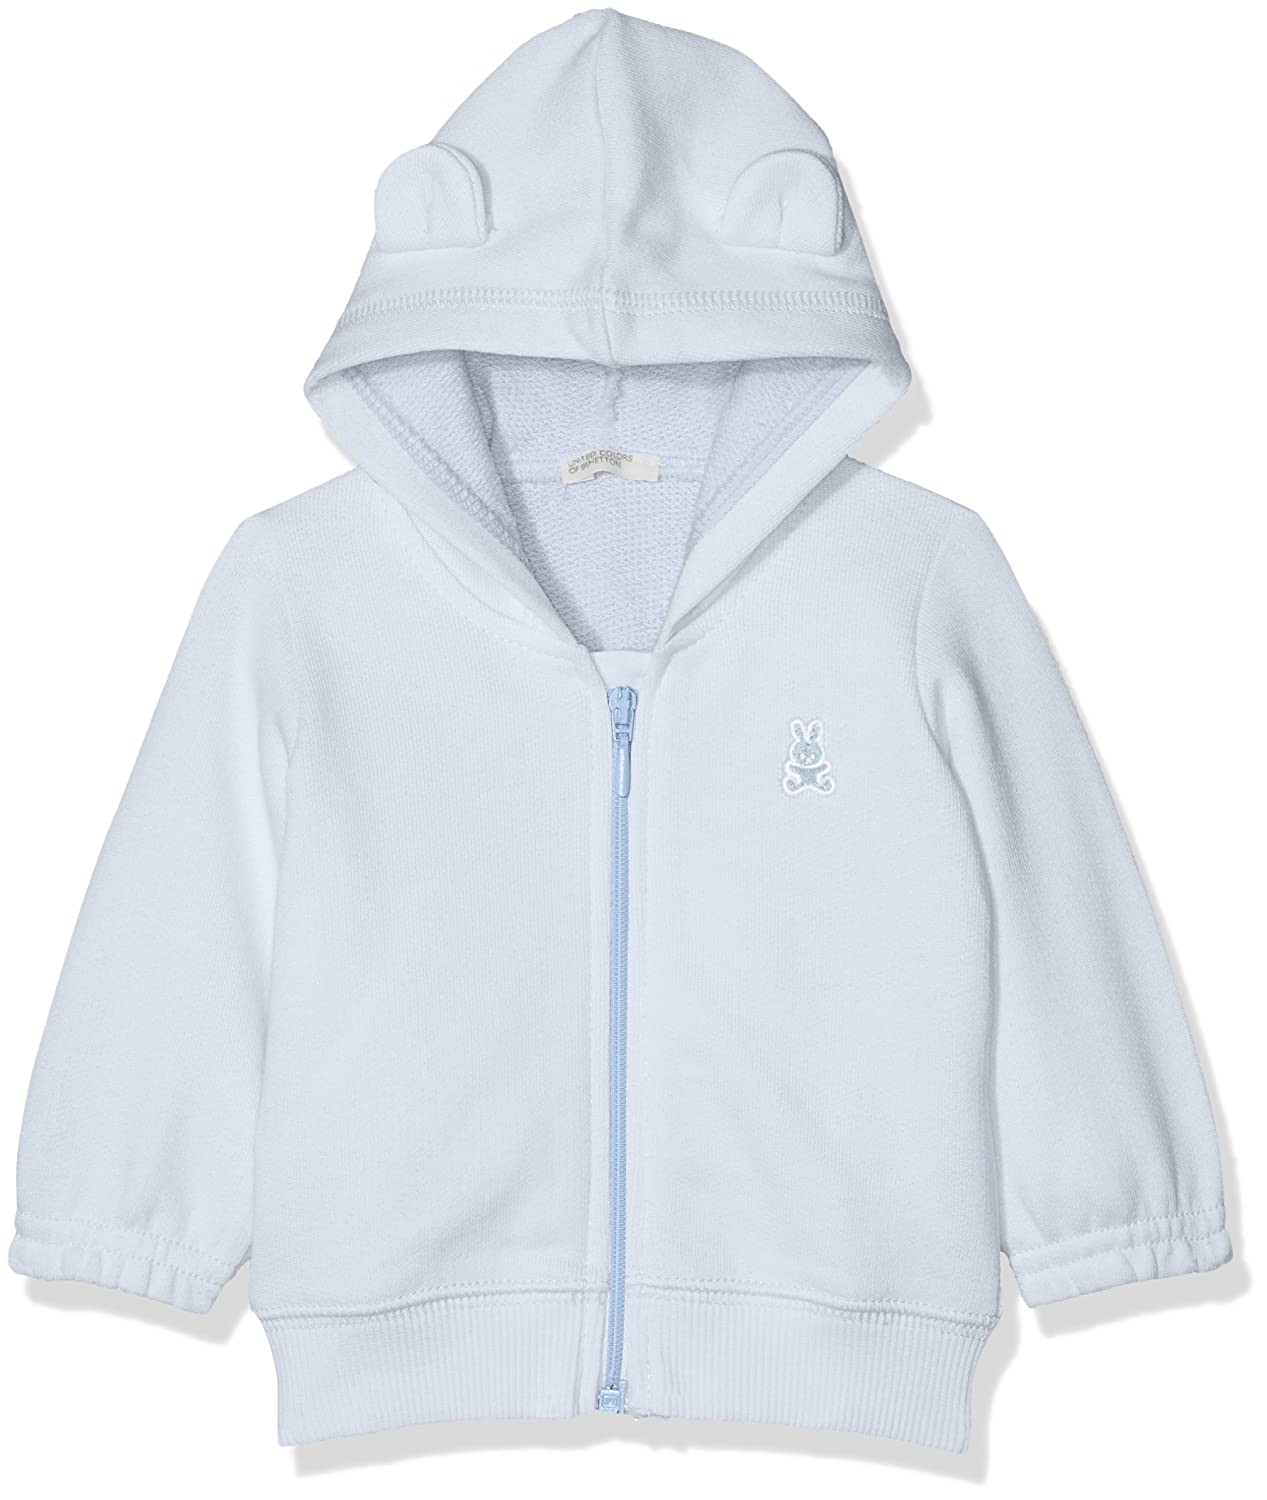 United Colors of Benetton Baby Boys' Jacket W/Hood L/S 102QC596N